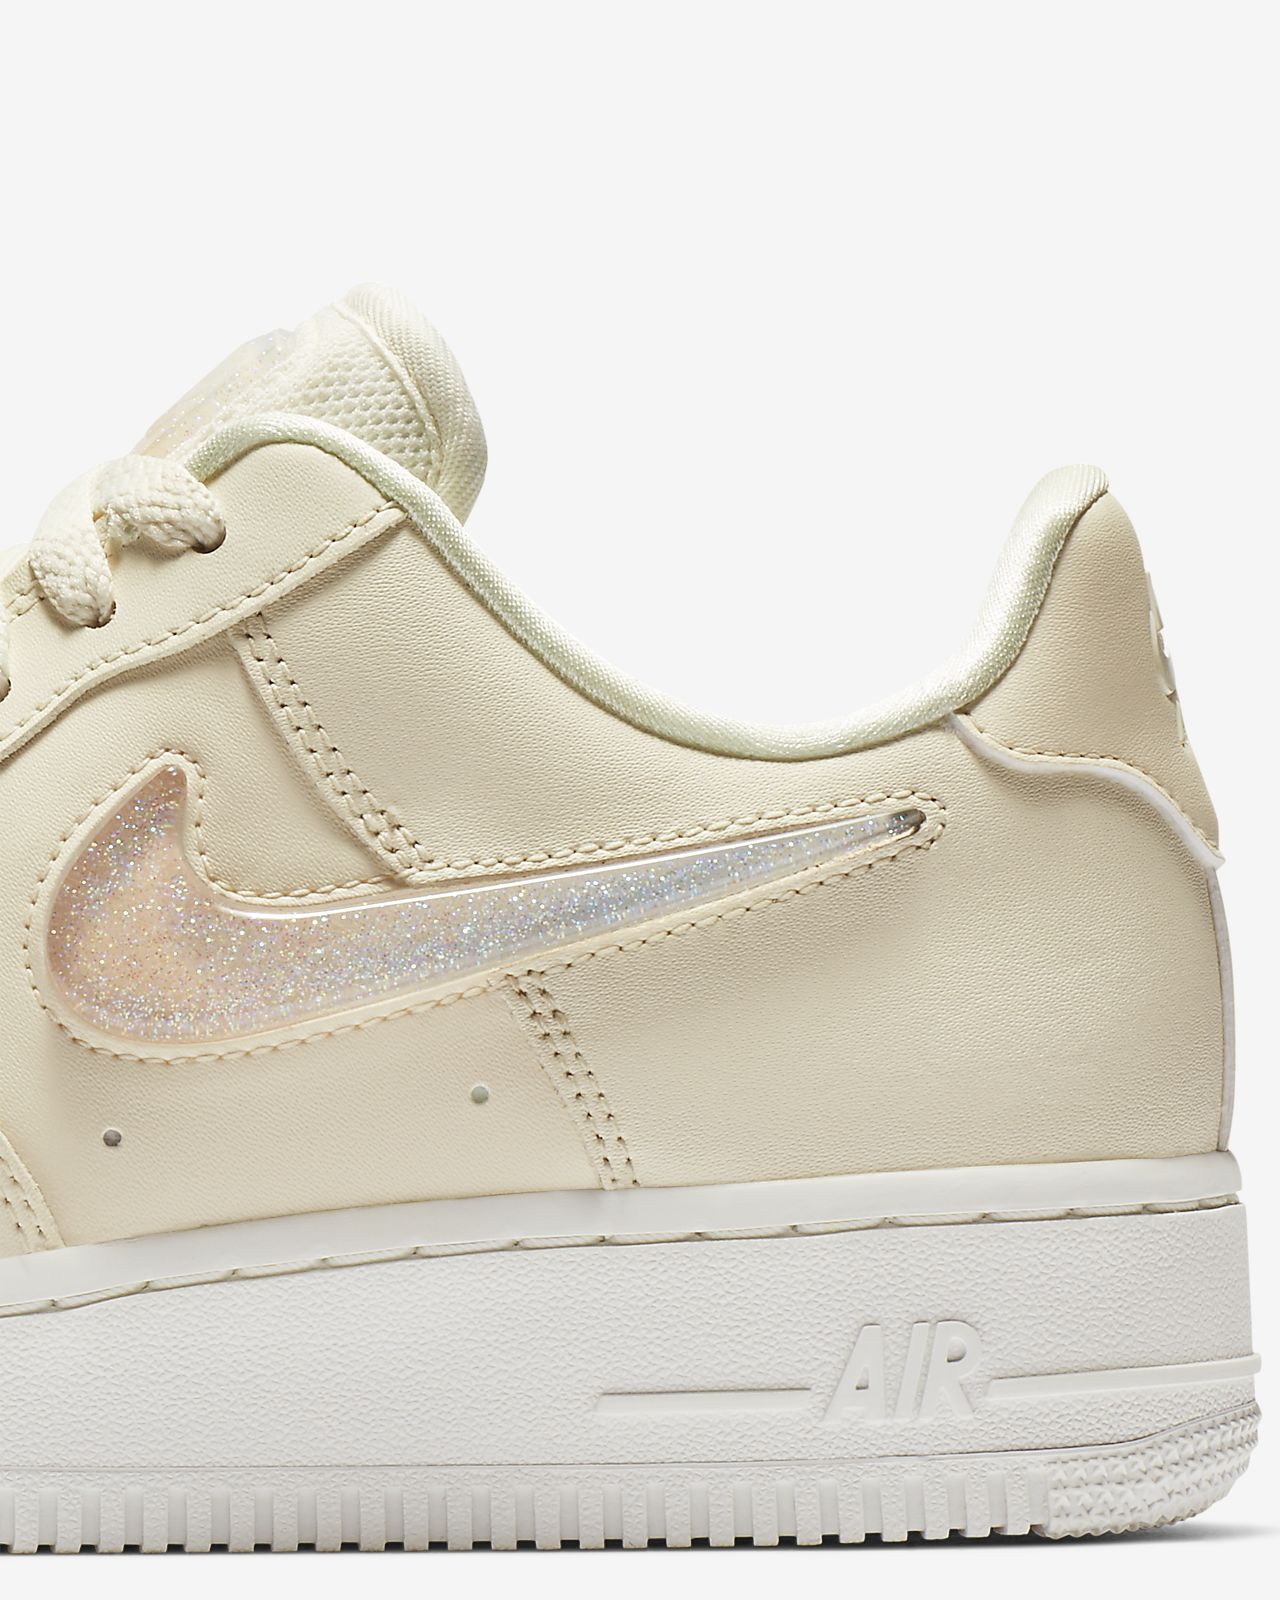 5a196ff698dc Nike Air Force 1  07 SE Premium Women s Shoe. Nike.com CA